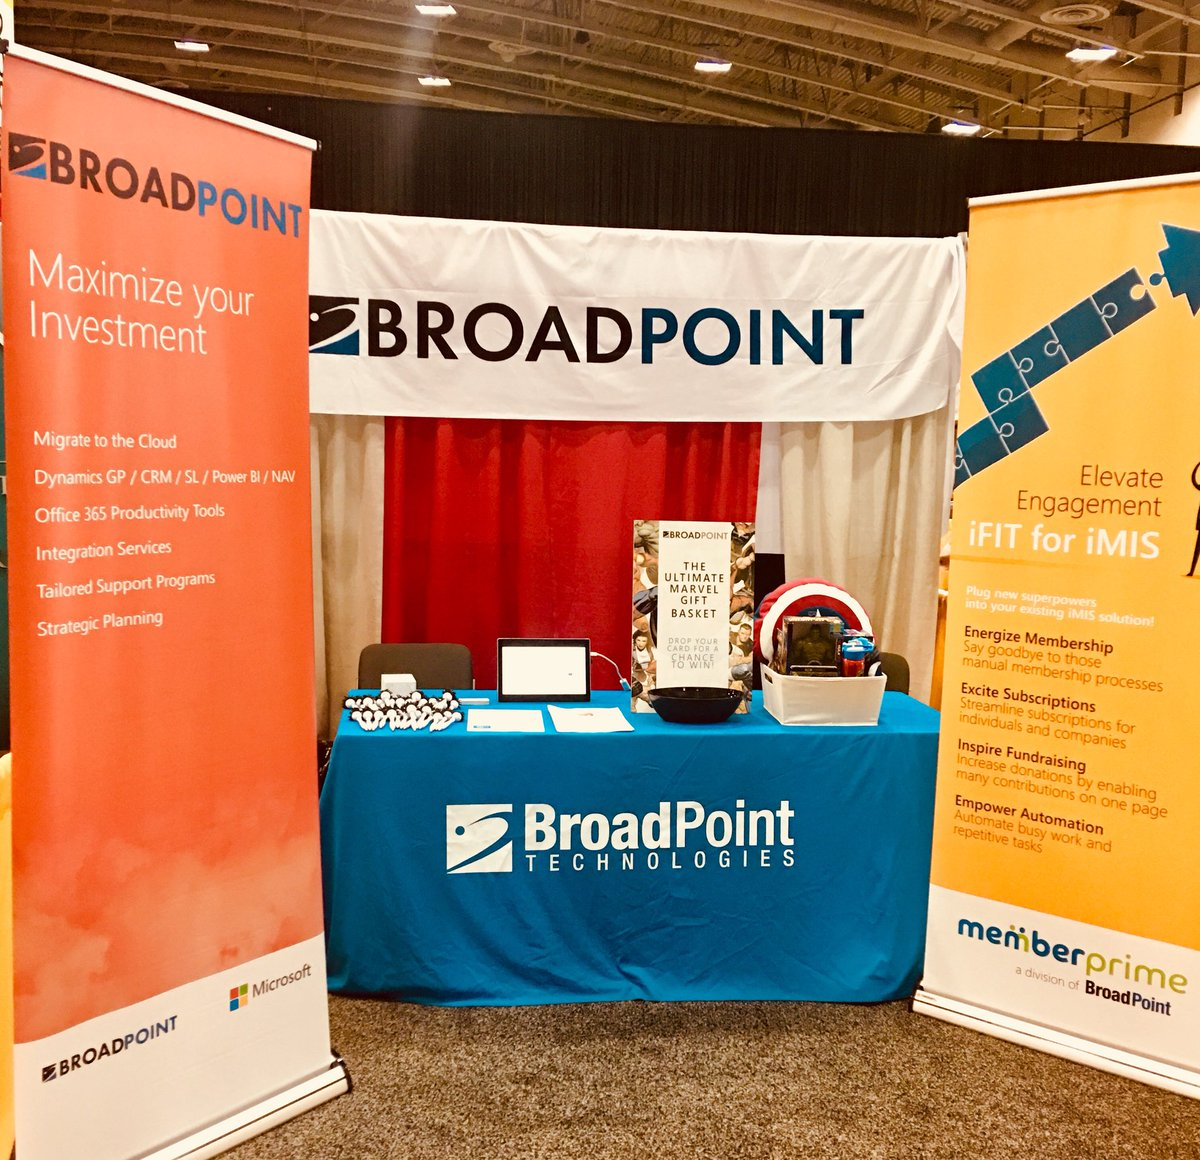 BroadPoint on Twitter: